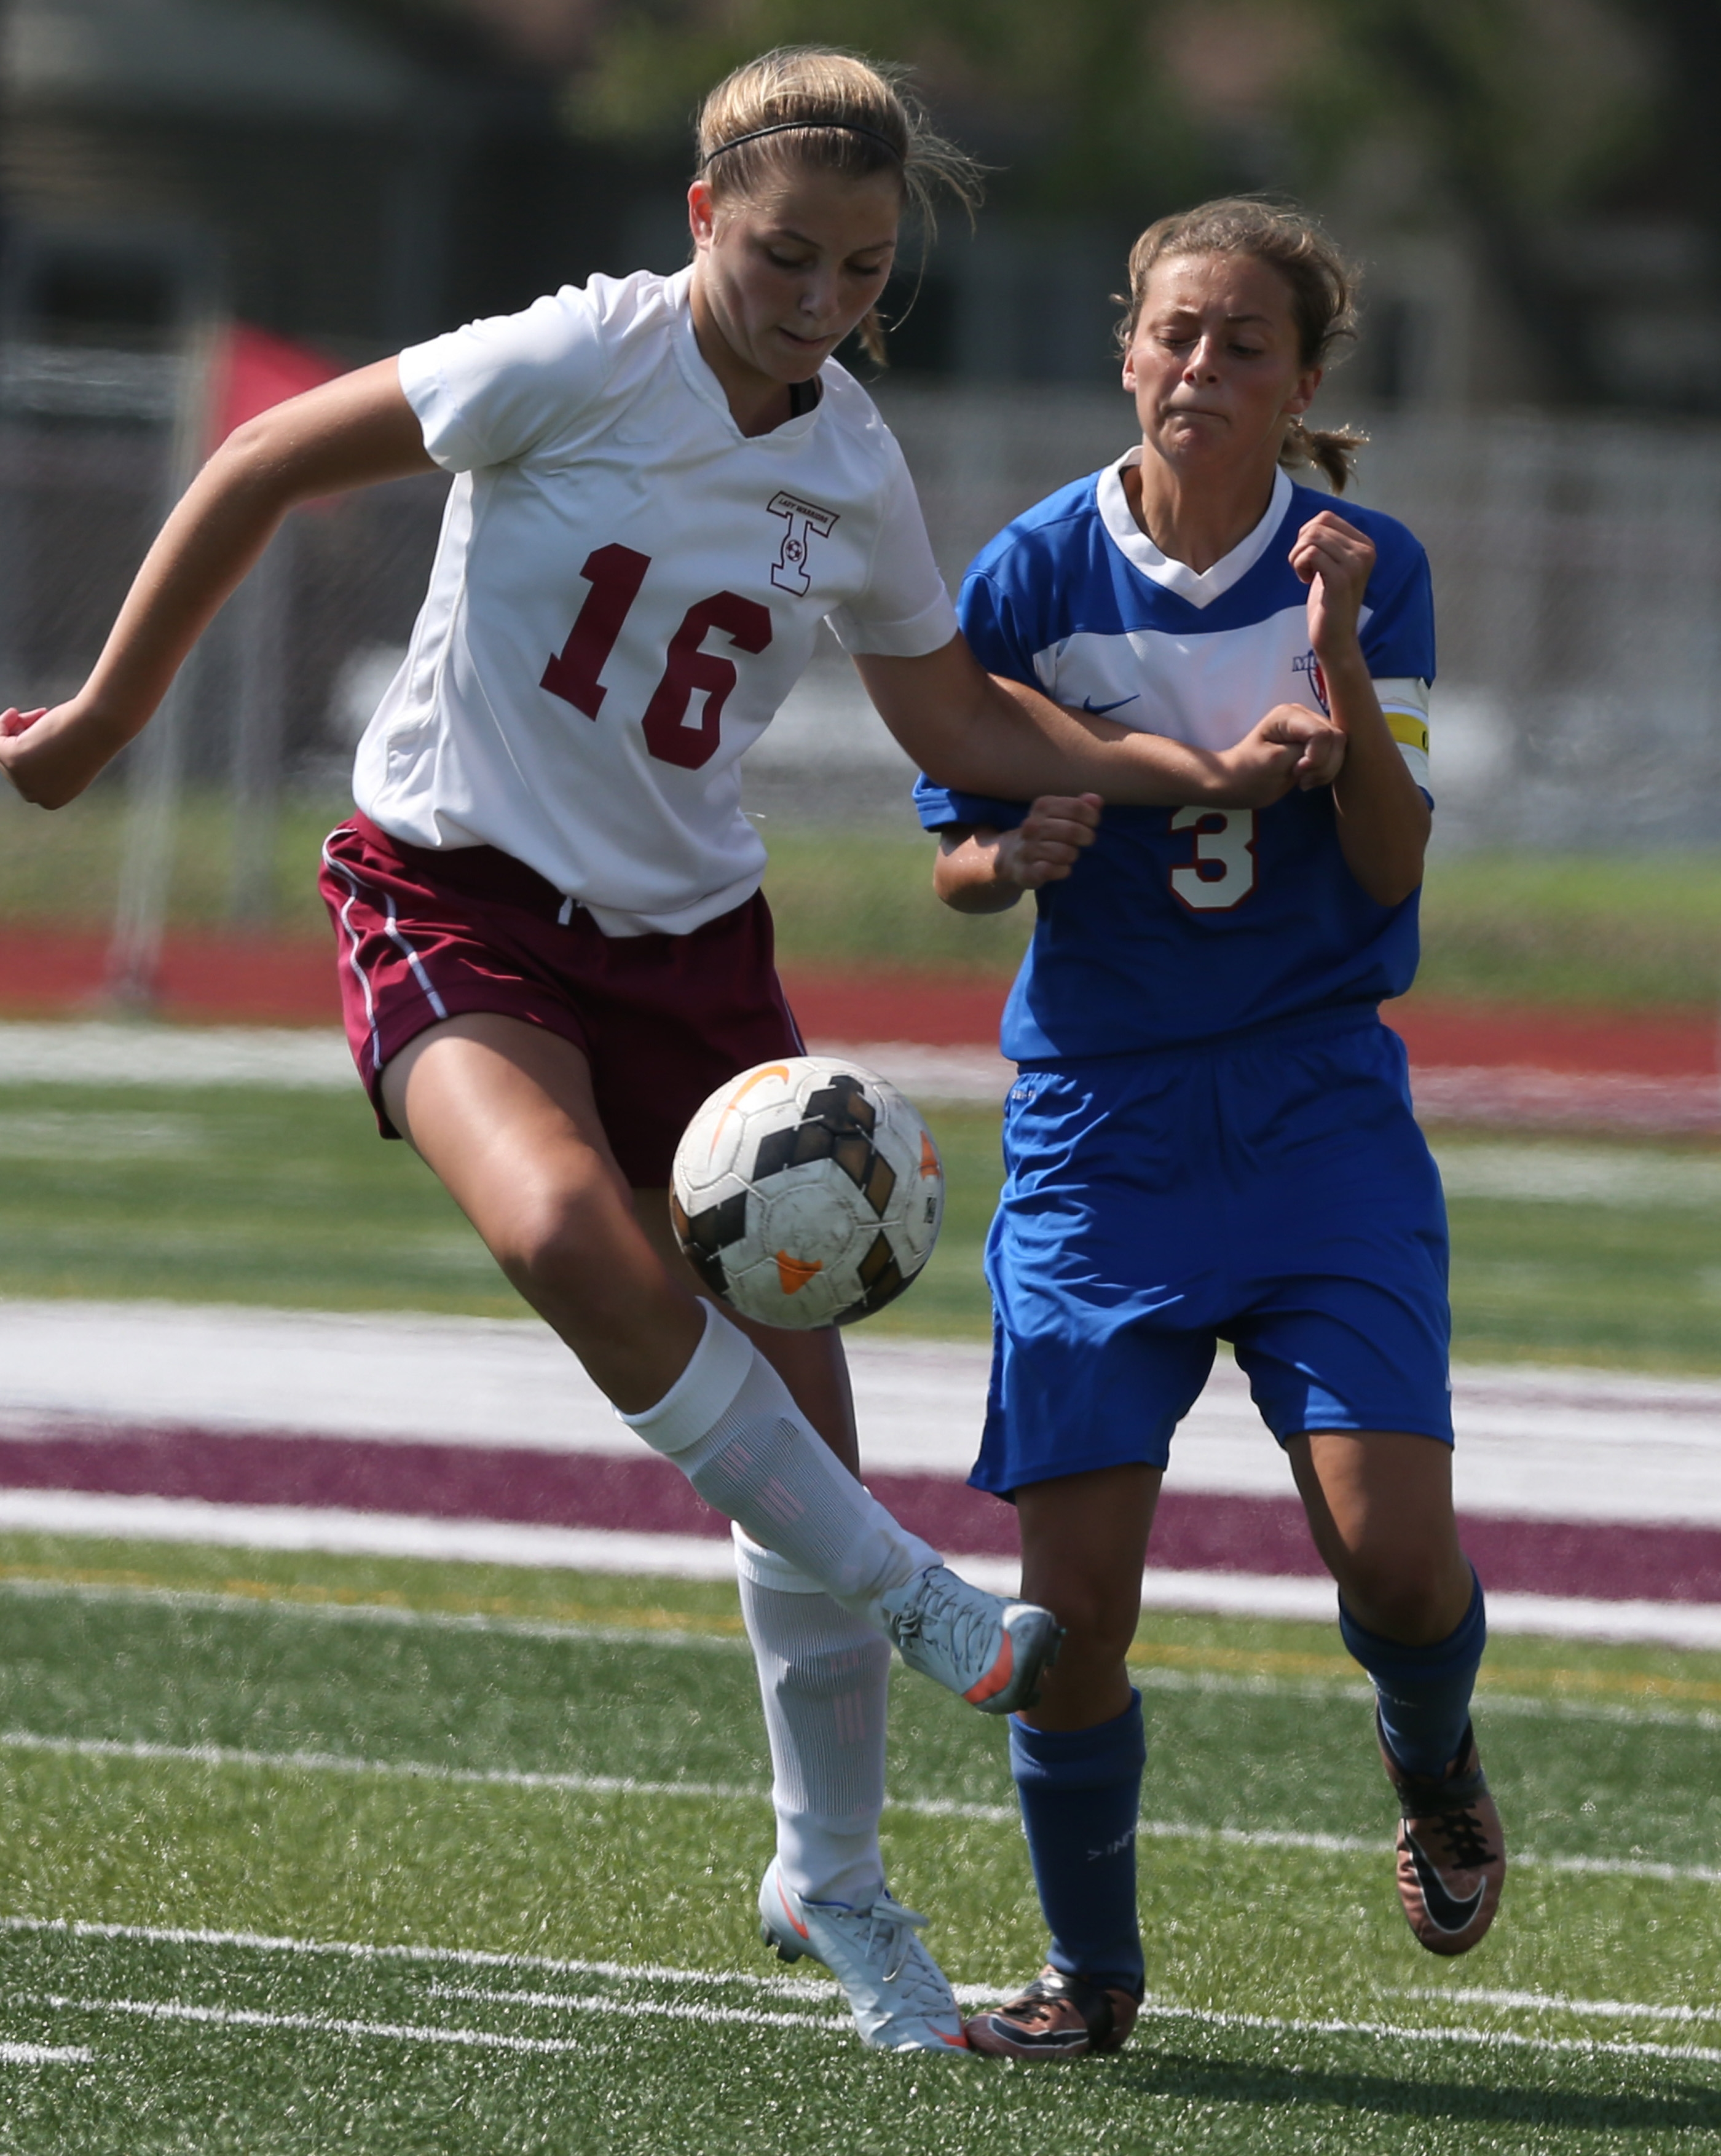 Tonawanda's  Zoe Oliver battles Medina's Martha Gardner for the ball in the first half at Clint Small Stadium in Tonawanda. At right, Sweet Home's Patrick Hayte and North Tonawanda's Griffin Carson use their heads to keep the ball in play.